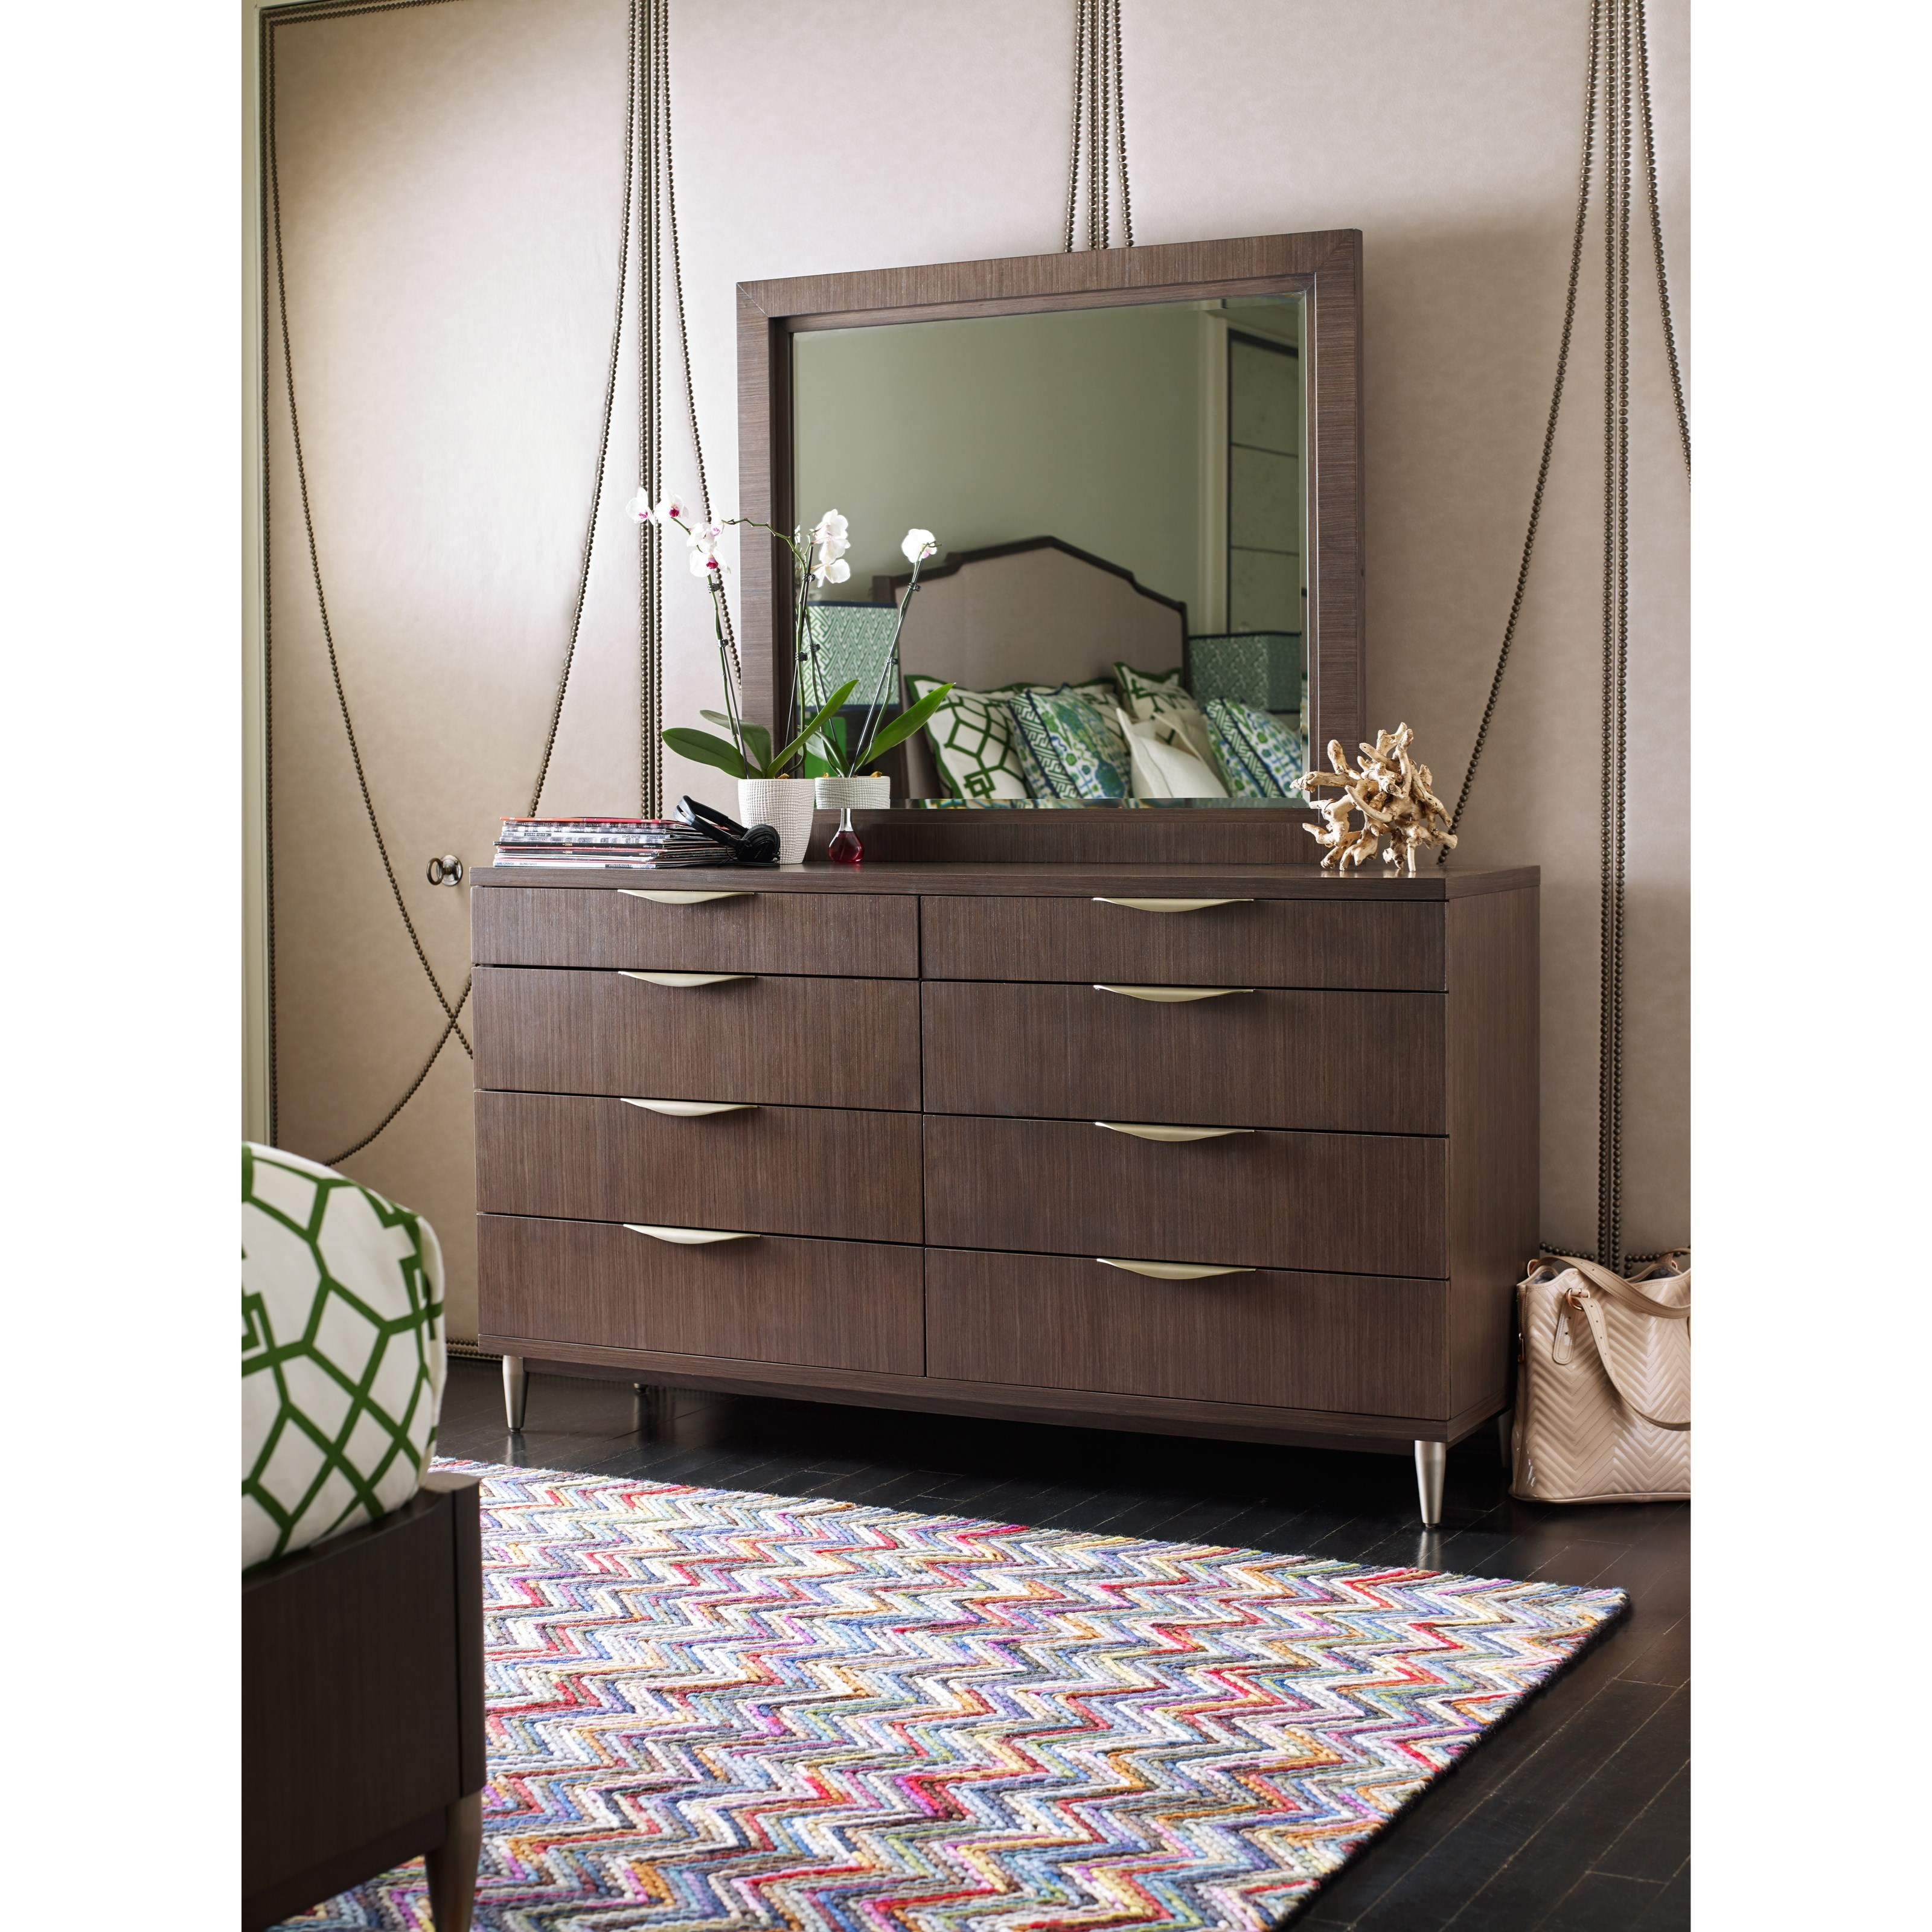 Rachael Ray Home by Legacy Classic Soho Dresser with Mirror - Item Number: 6020-1200+0400